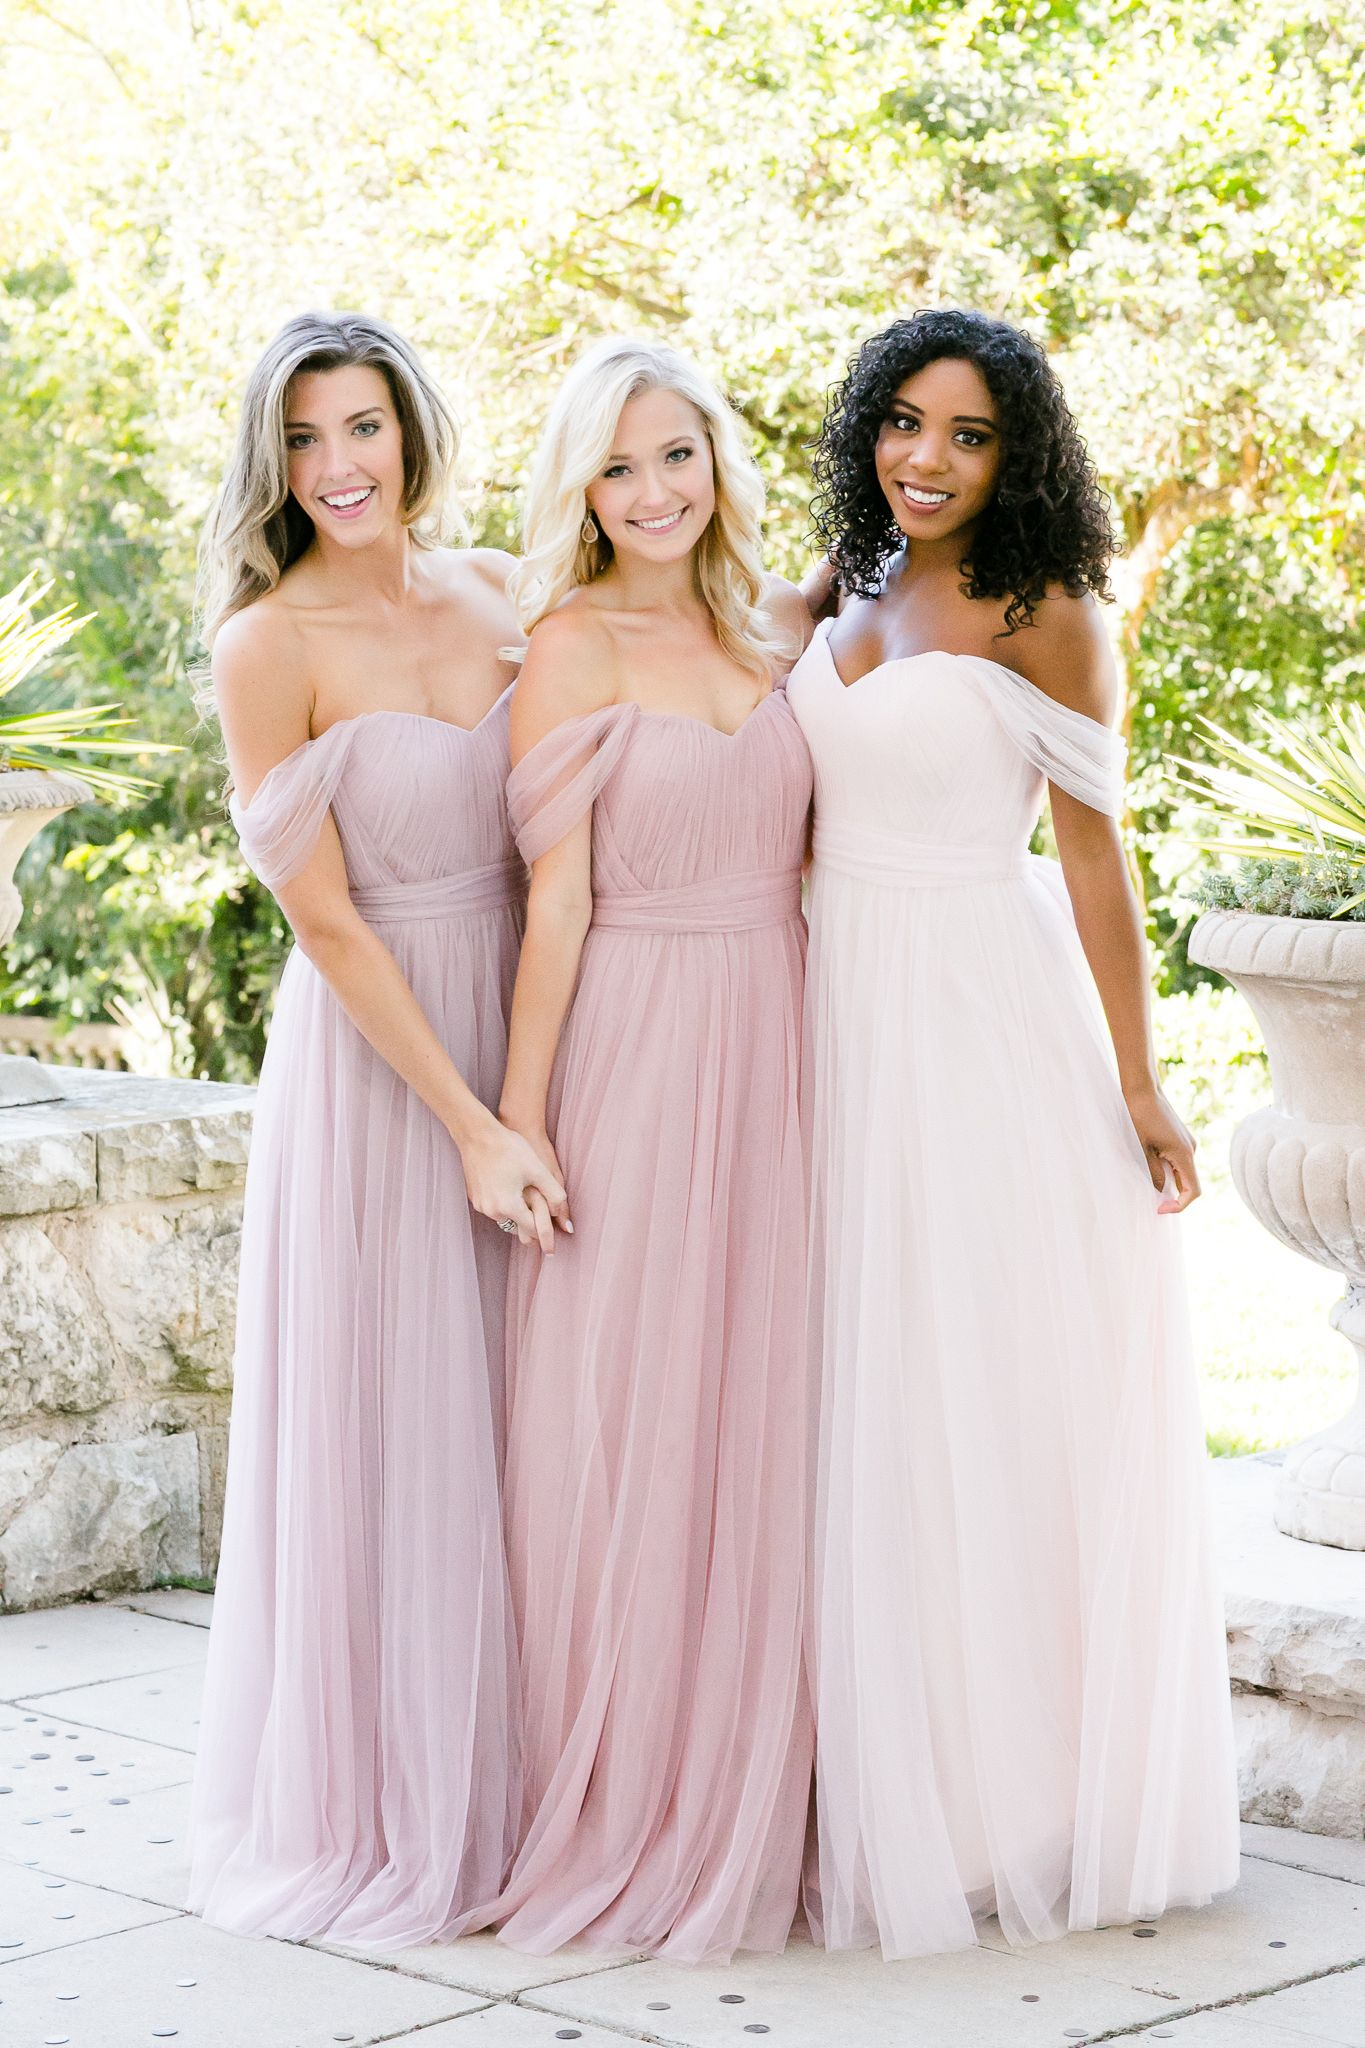 Mix And Match Revelry Bridesmaid Dresses And Separates Revelry Has A Wide Selection Of Unique Unique Bridesmaid Dresses Long Bridesmaid Dresses Bridesmaid Tops